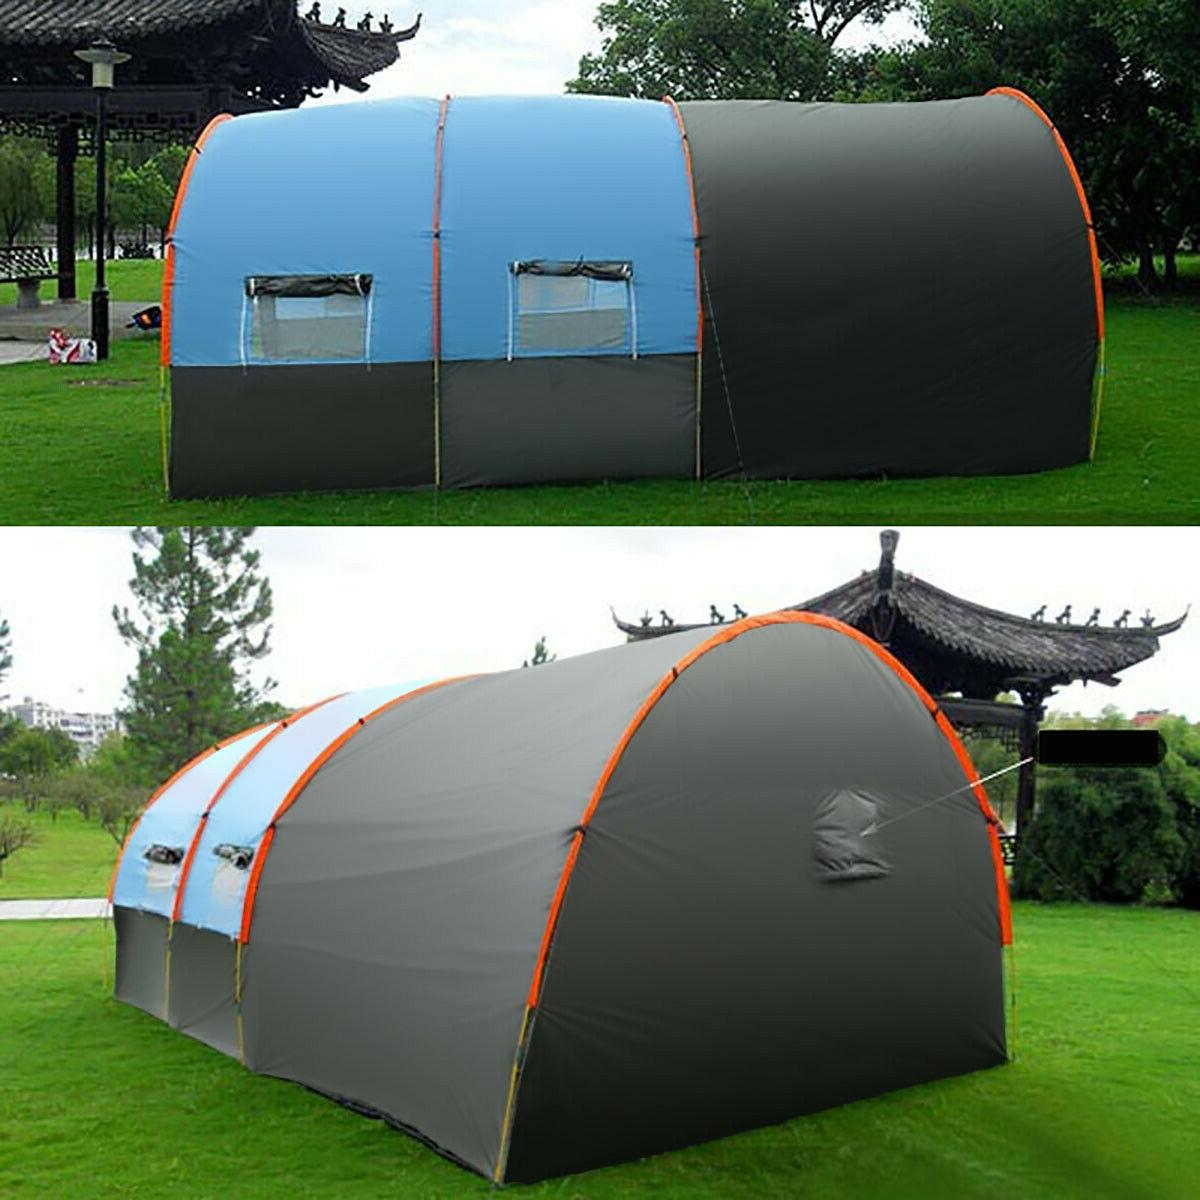 8-10 Travel Camping Layer Tent